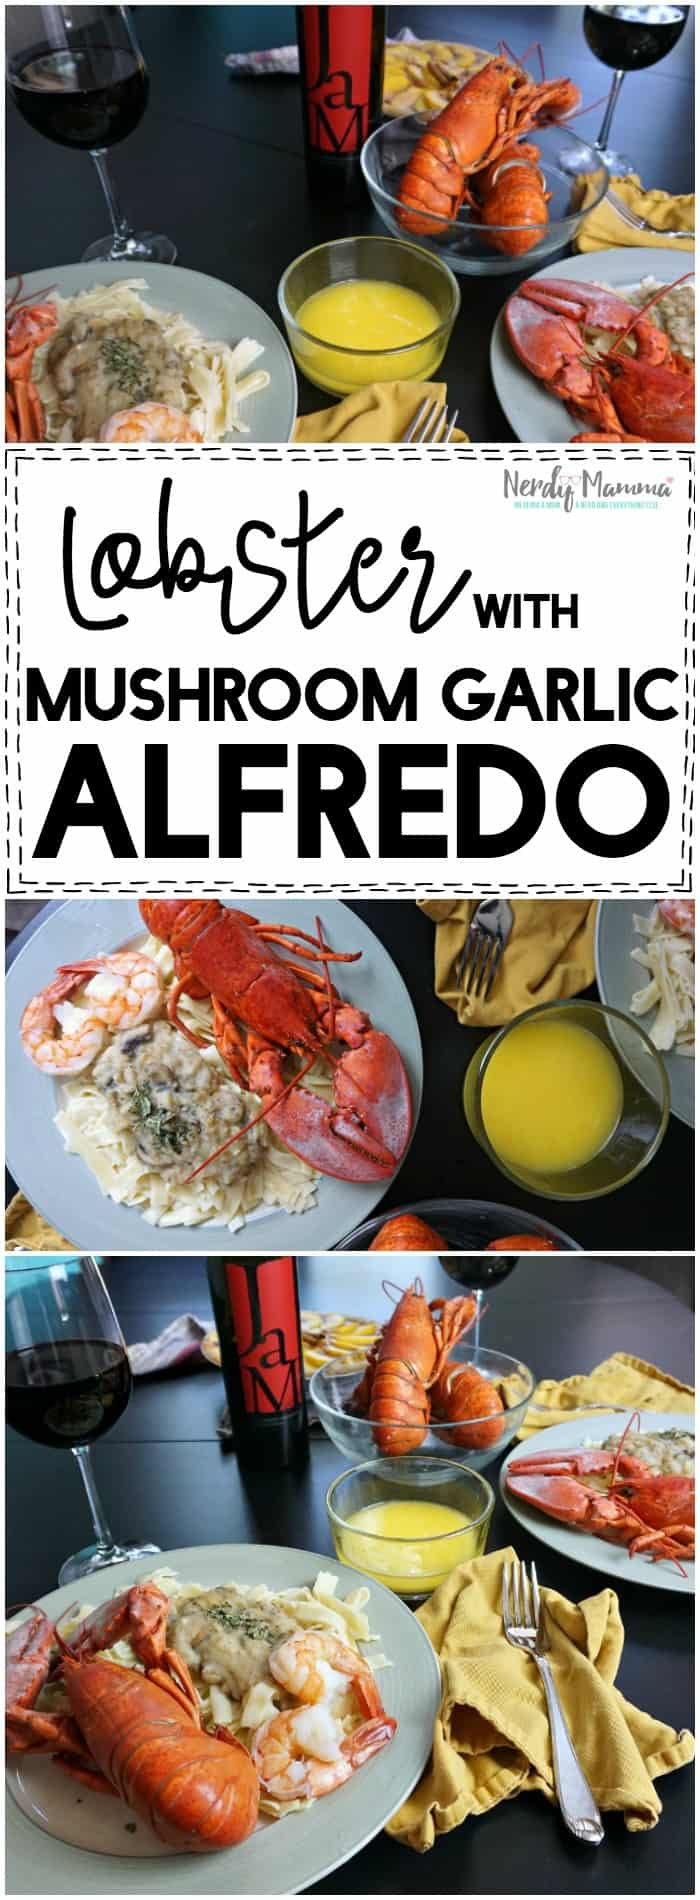 Oooh! This recipe for Lobster with a mushroom and garlic alfredo sauce made without cheese! Sounds amazing! Great vegan and gluten-free recipe (well, except for the lobster, LOL!)